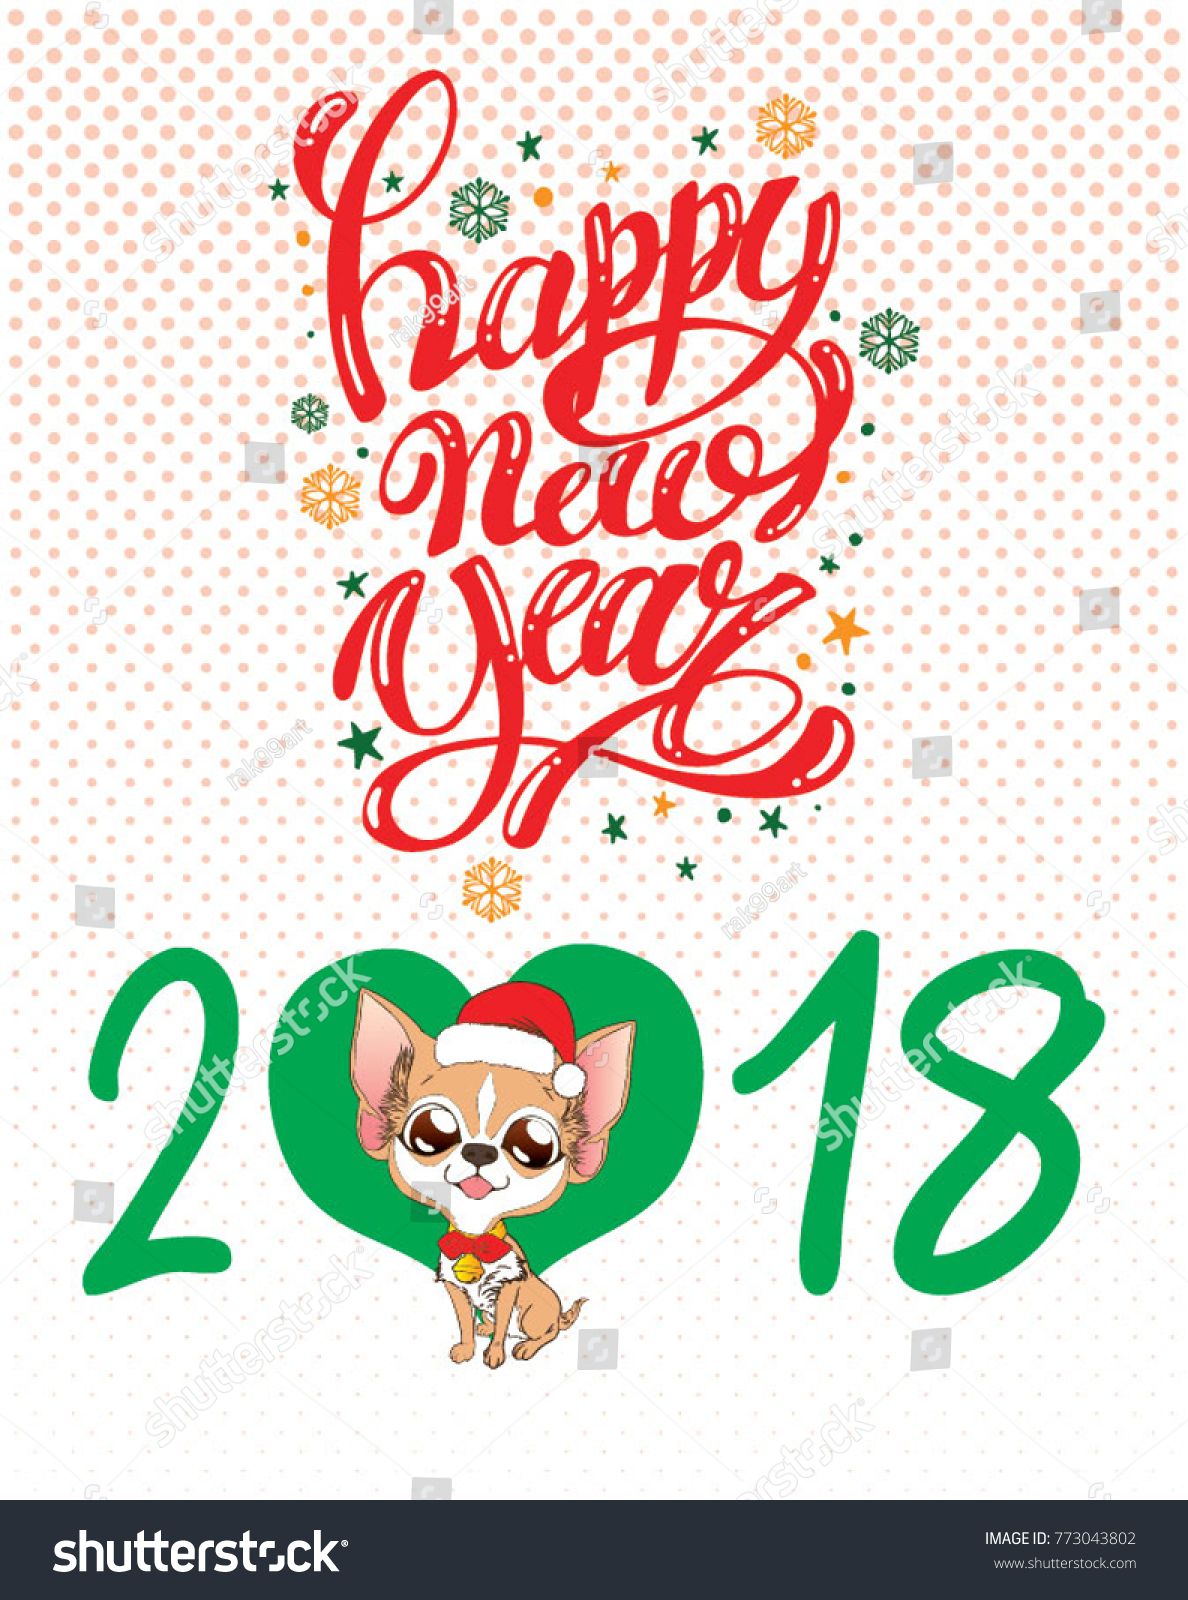 Happy New Year Greetings Cute Chihuahua Stock Vector Royalty Free